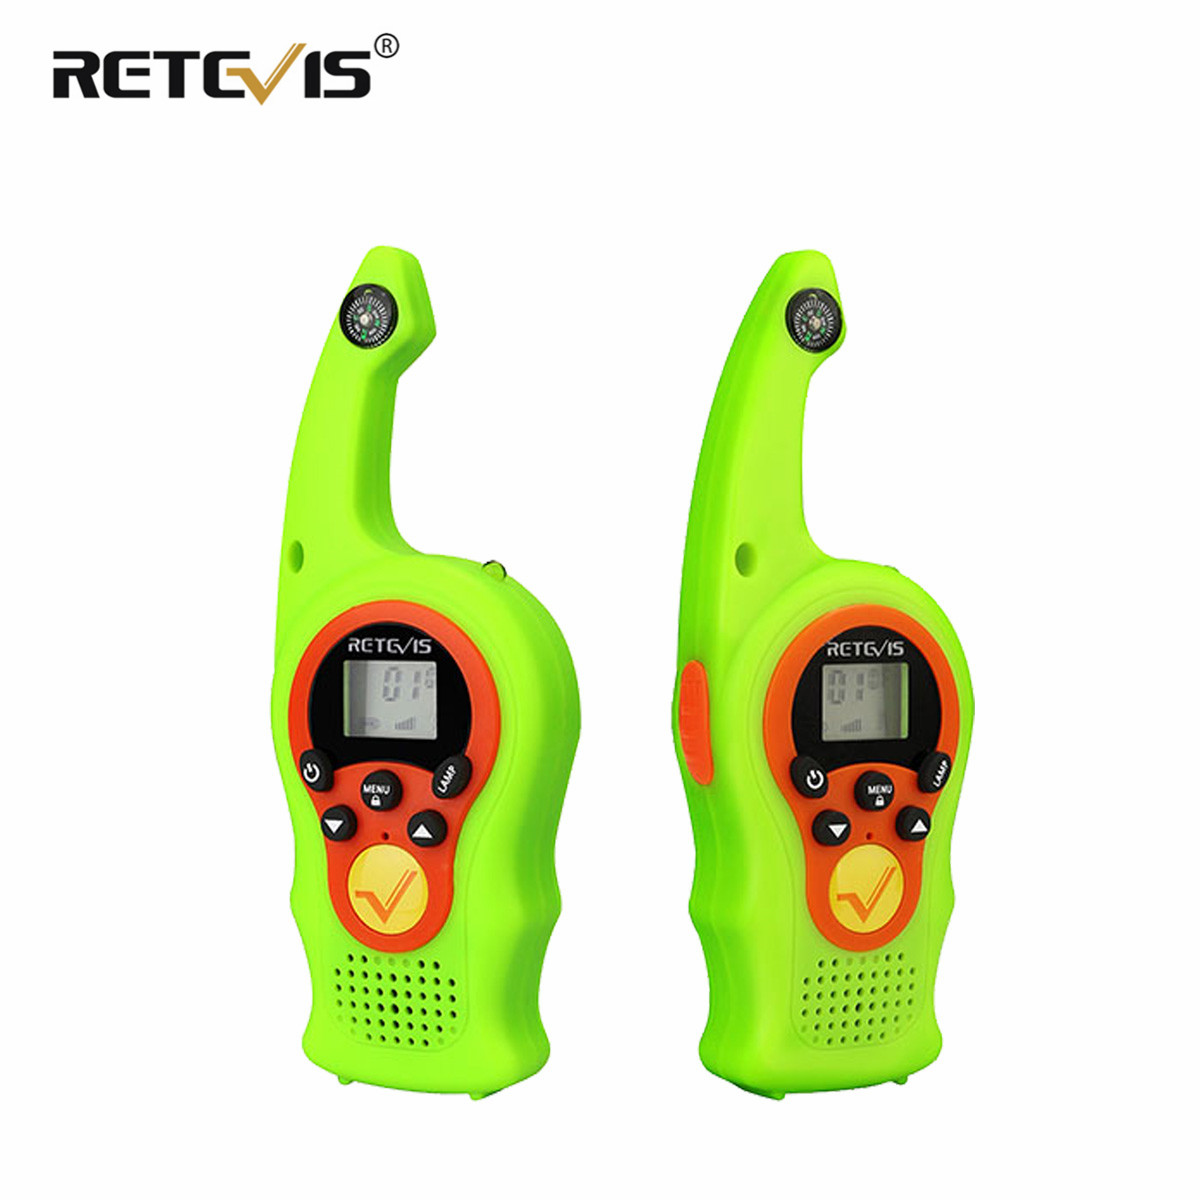 Retevis RT675/RT75 Two-way Radio 2pcs FRS 0.5W PMR446 Kids WalkieTalkie Compass VOX Flashlight Christmas Gift Portable Walkie